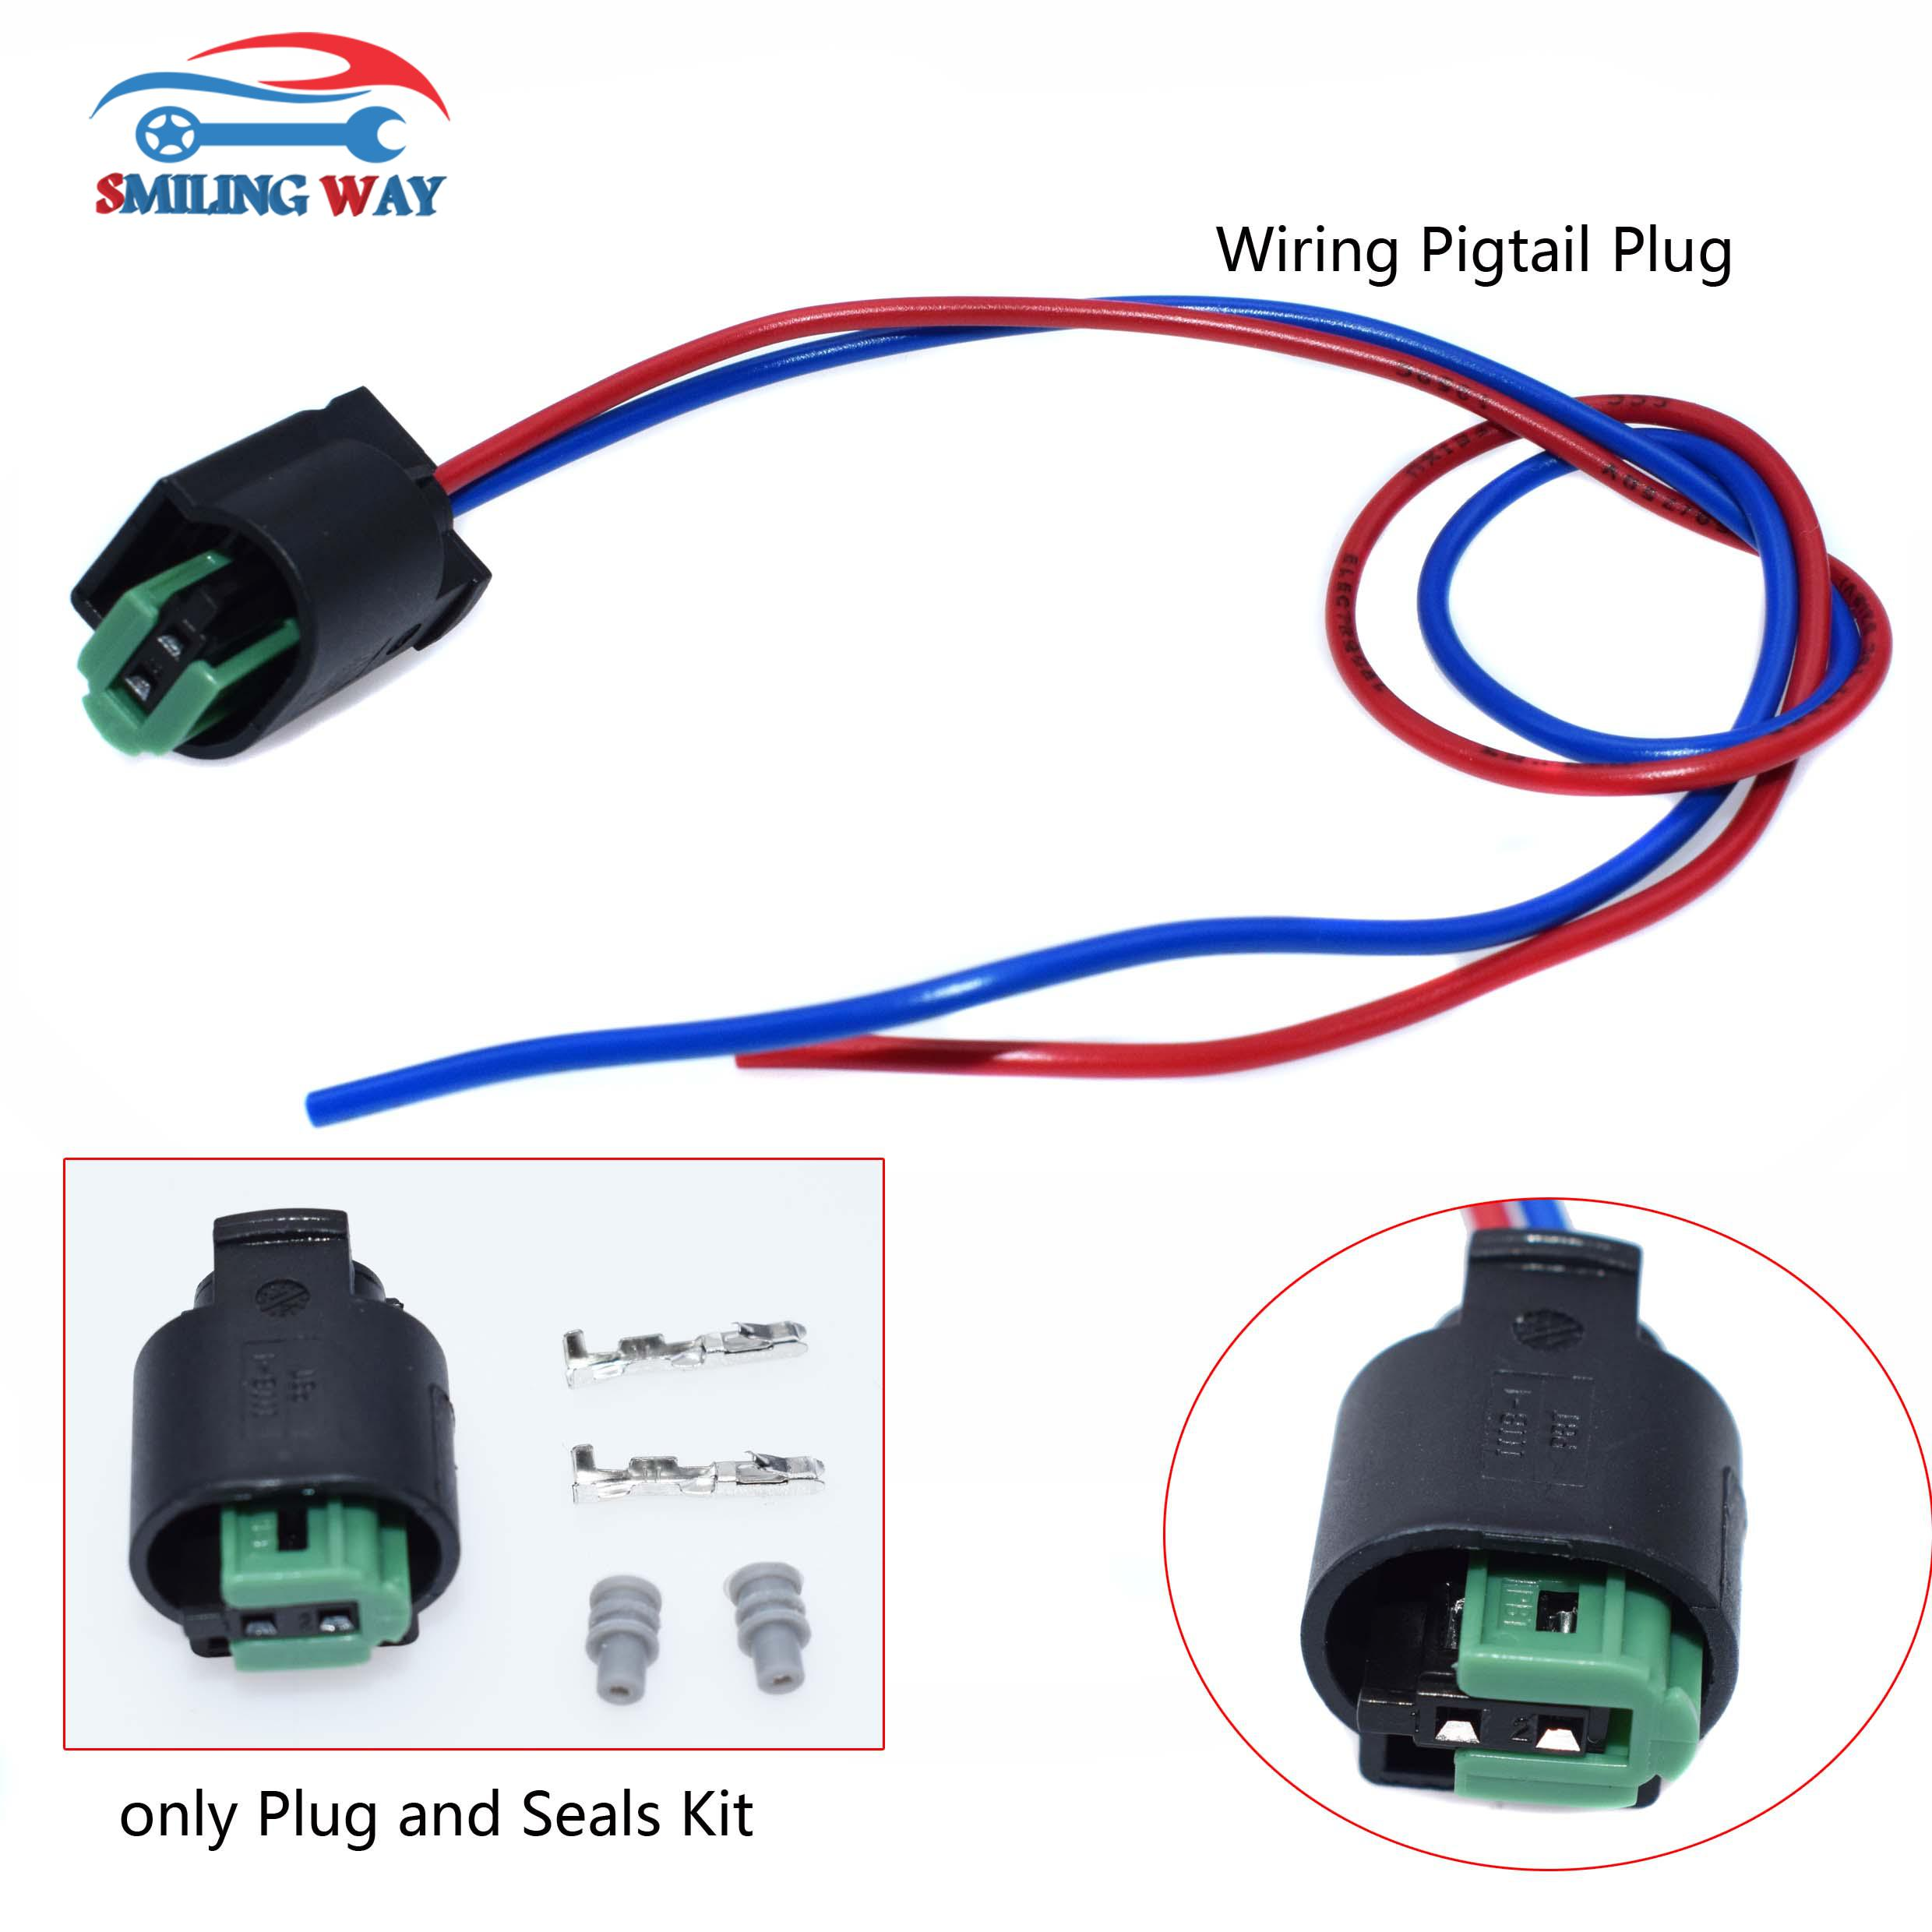 US $5.7 10% OFF|SMILING WAY Temperature / Airbag Sensor Connector Plug Airbag Wire Harness on wire cap, wire nut, wire sleeve, wire connector, wire holder, wire antenna, wire ball, wire clothing, wire lamp, wire leads,